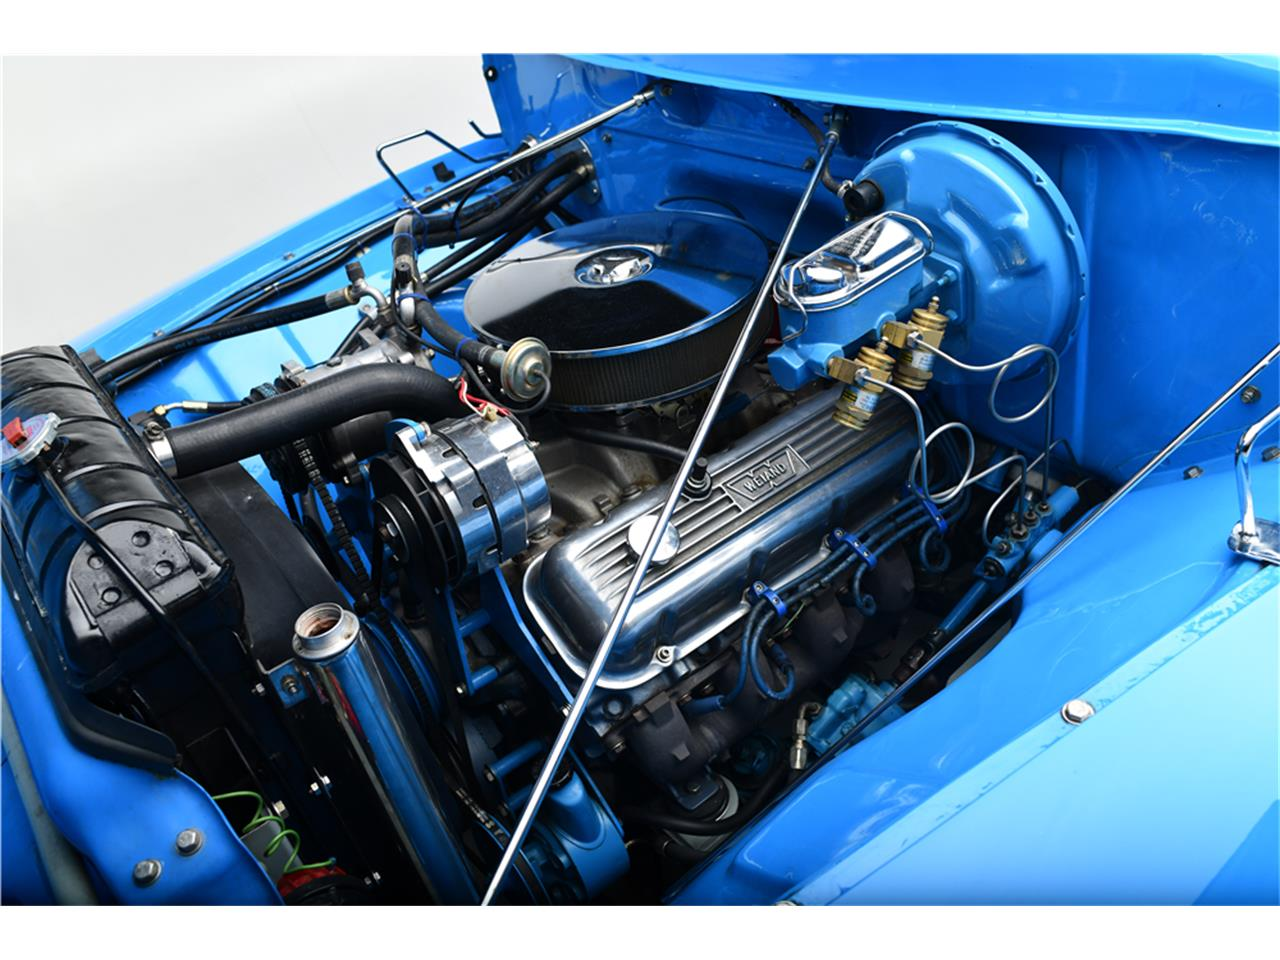 1955 Ford F100 For Sale Cc 1174432 Truck Engine Large Picture Of 55 P674